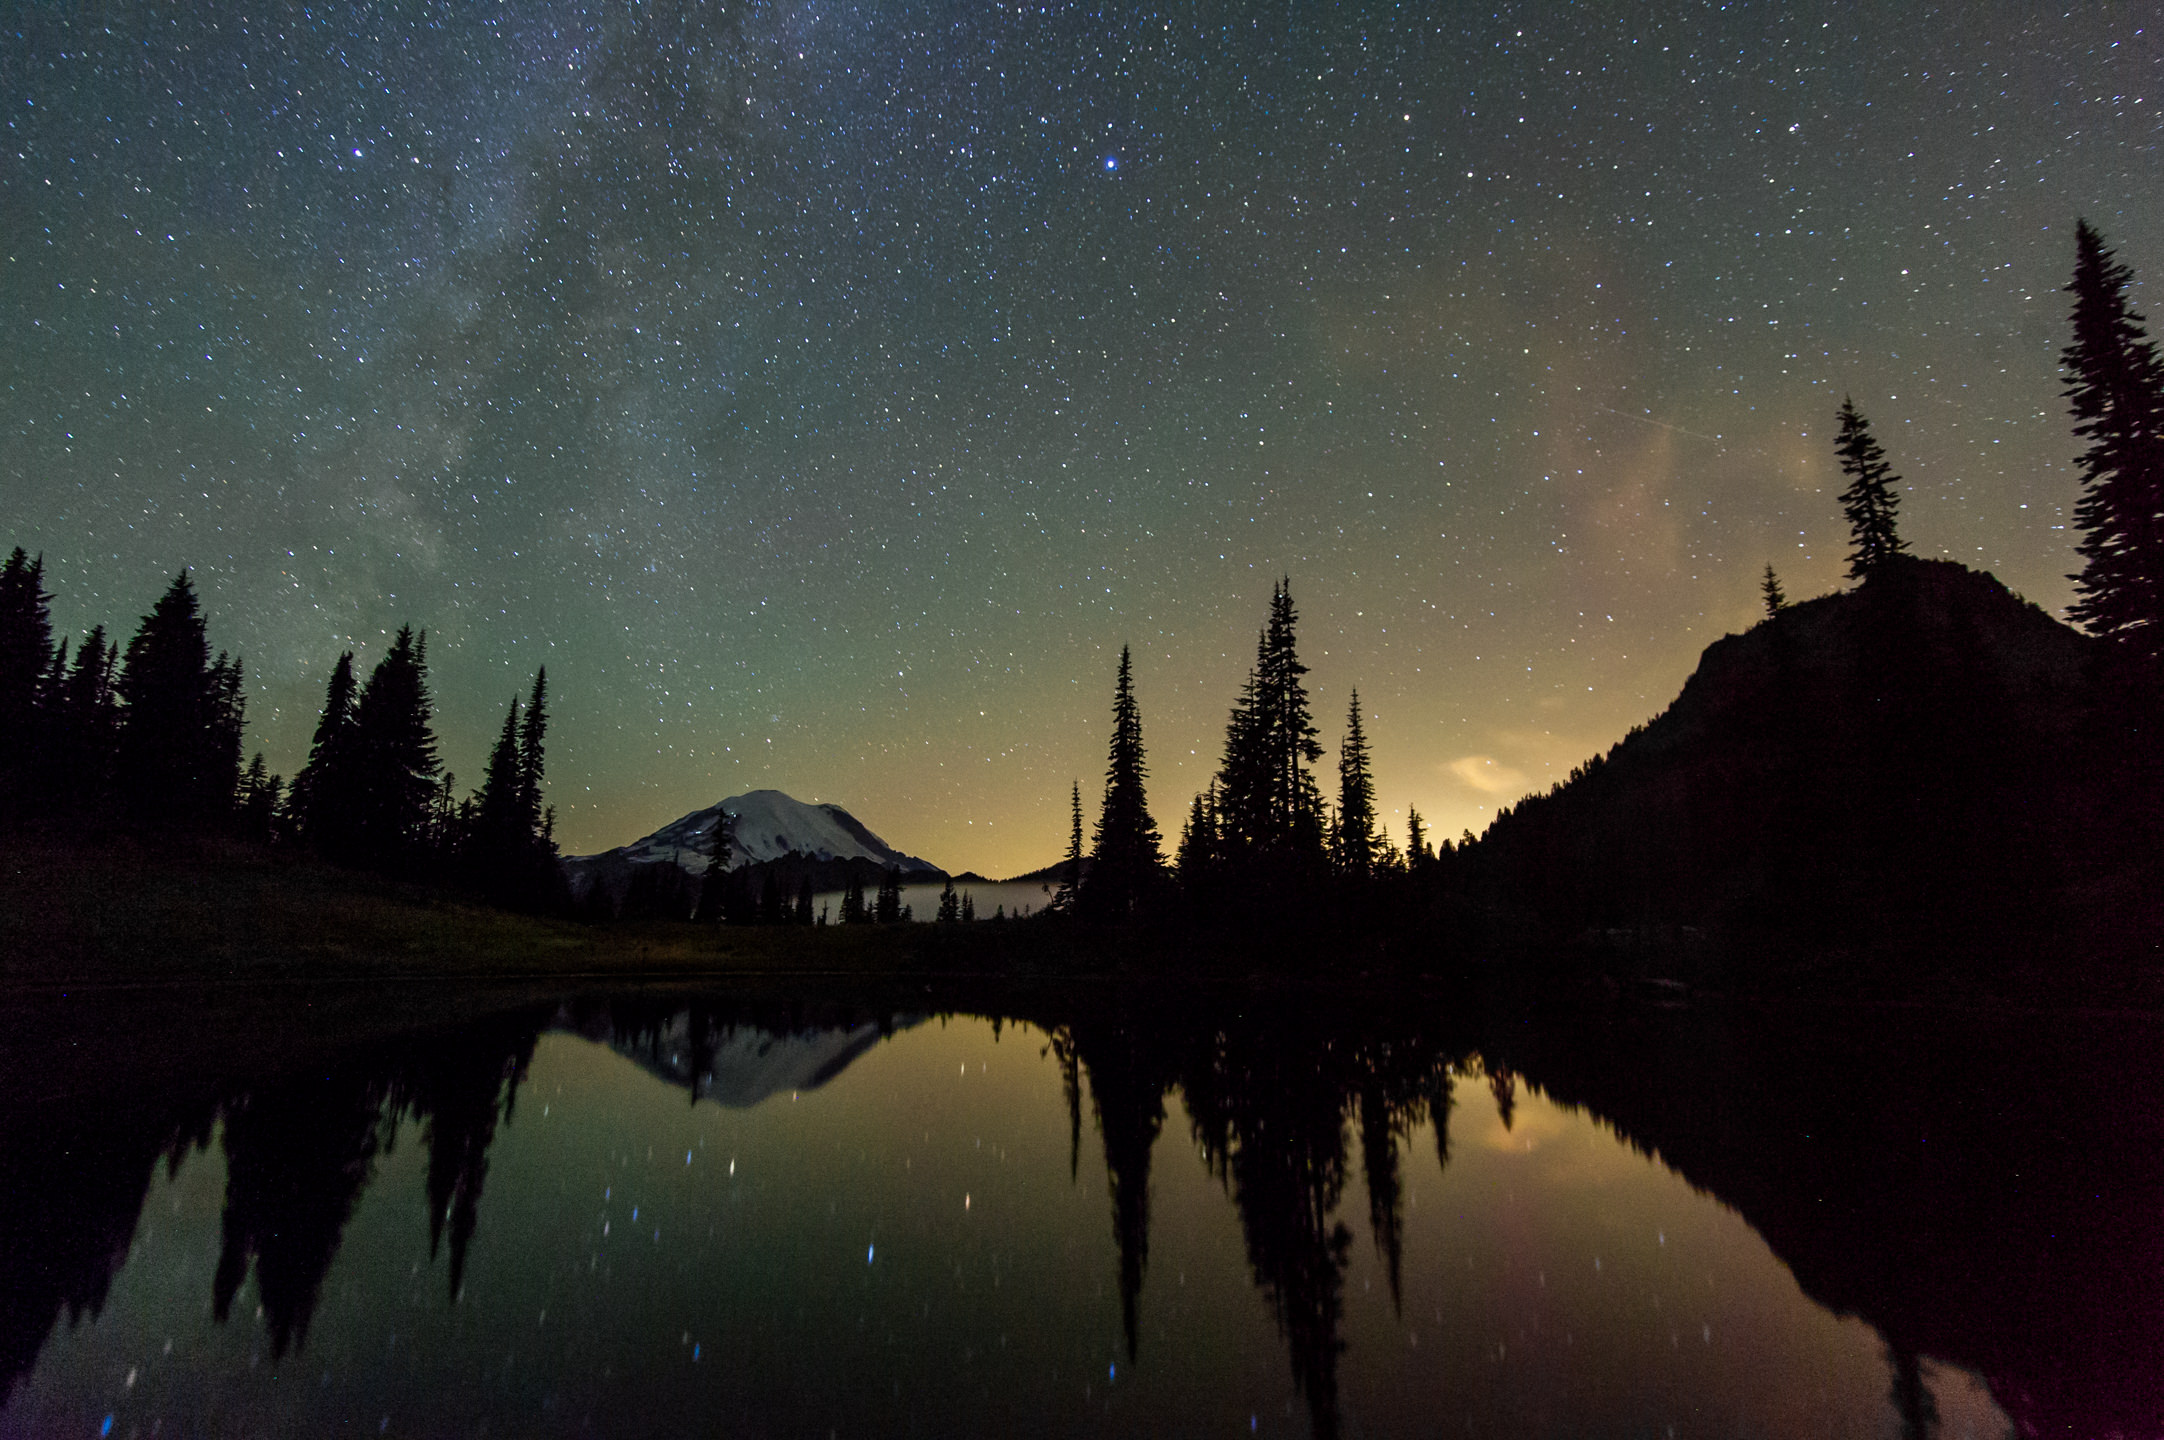 Perseid Meteor Shower 2015, Stars, and Milky Way over Mount Rainier National Park Reflection at Tipsoo Lake